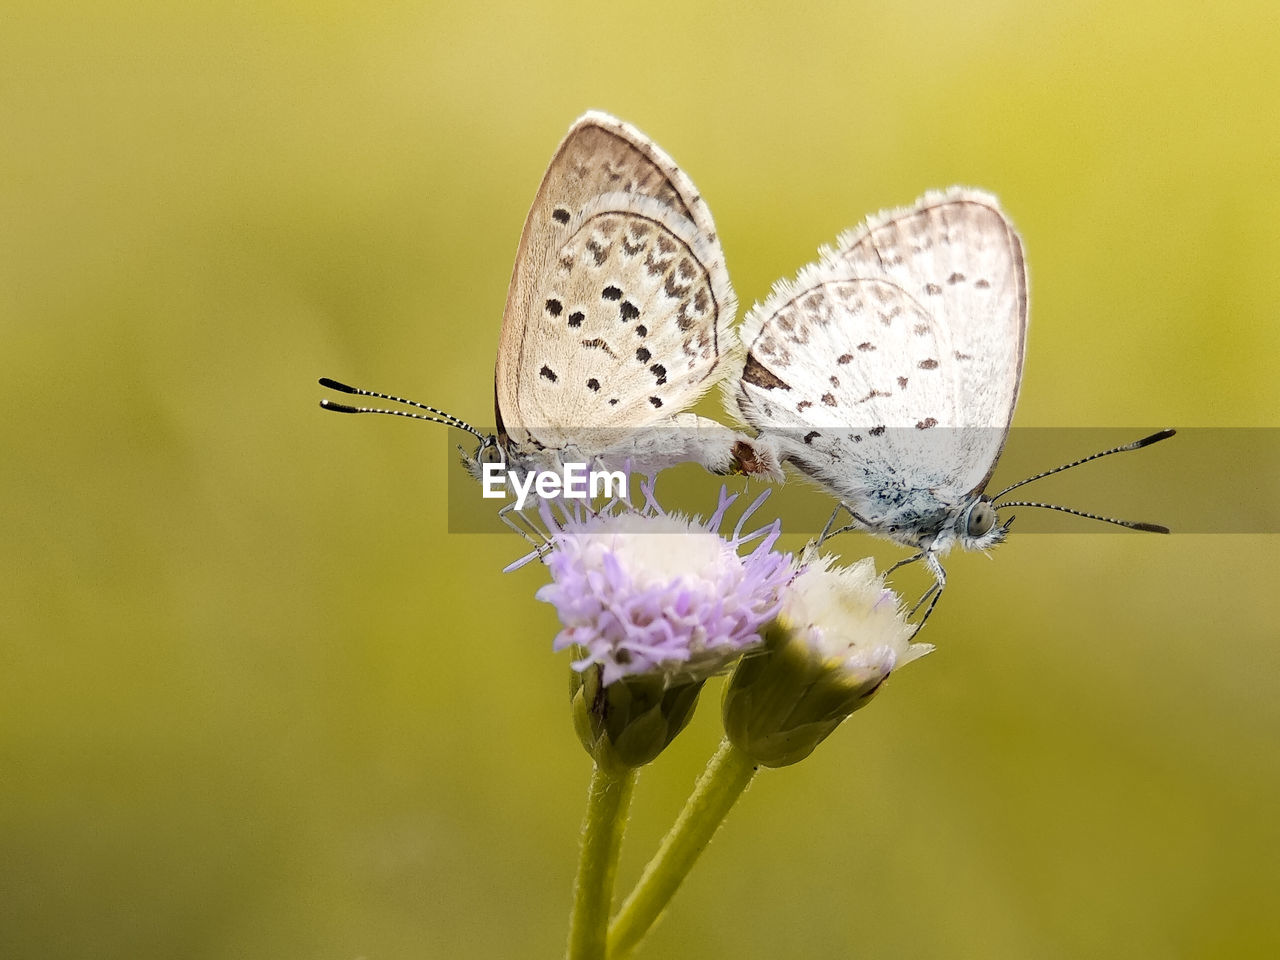 flower, flowering plant, insect, animal themes, animal, invertebrate, plant, beauty in nature, fragility, animal wing, animal wildlife, vulnerability, animals in the wild, close-up, butterfly - insect, one animal, freshness, petal, nature, flower head, no people, pollination, butterfly, purple